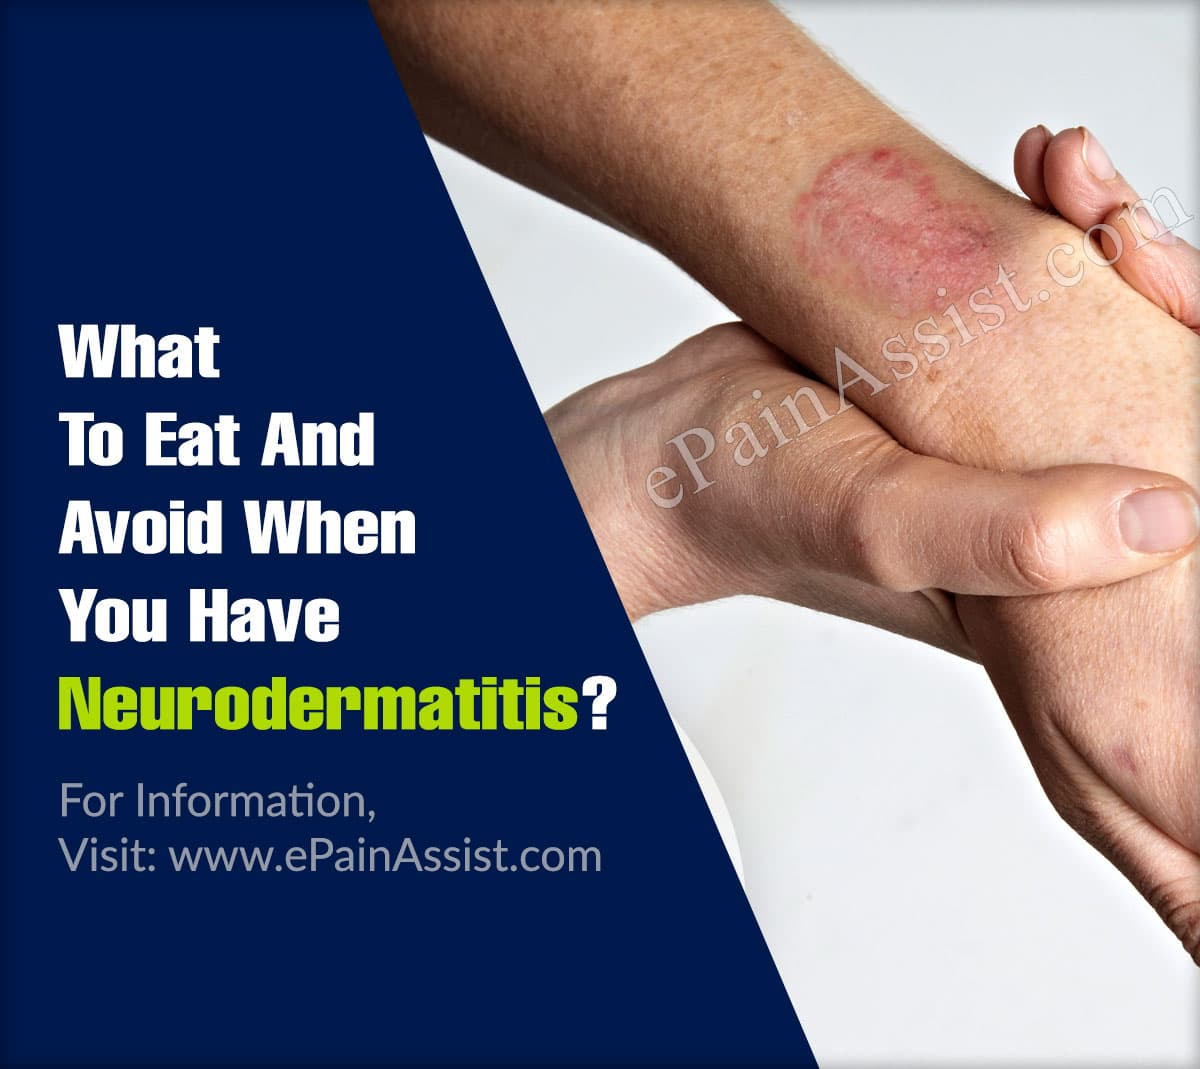 What To Eat And Avoid When You Have Neurodermatitis?